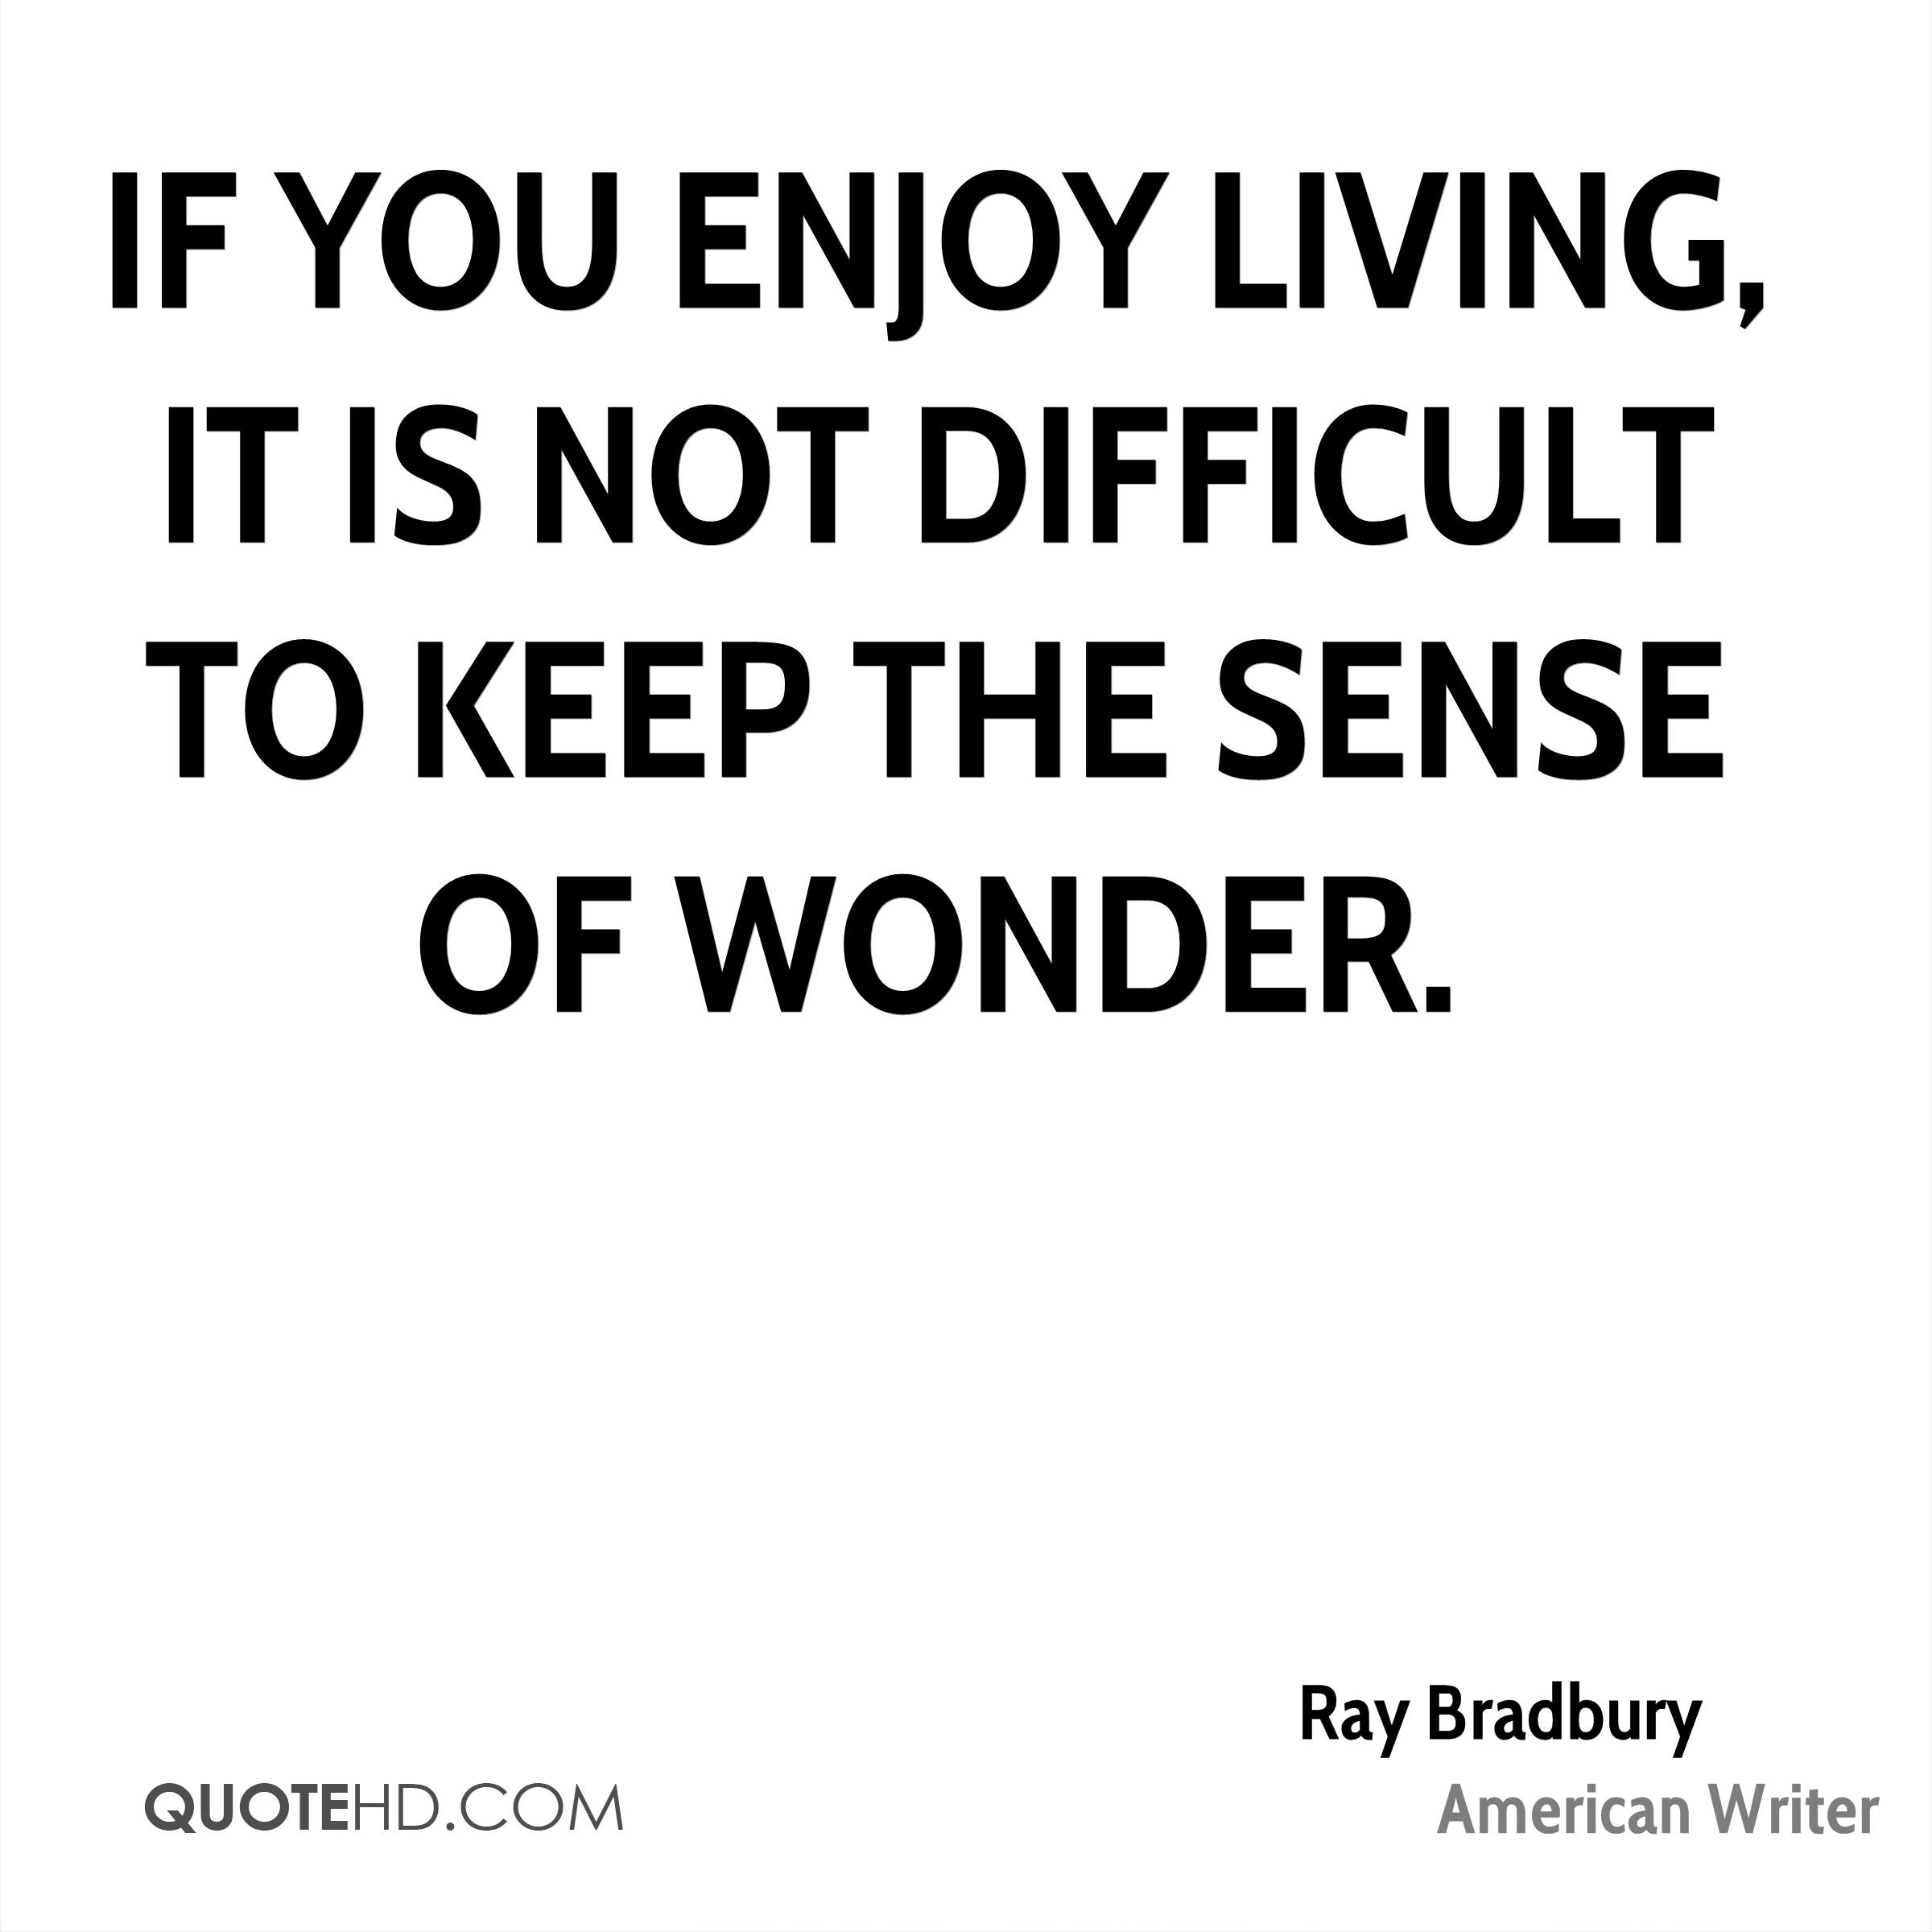 If you enjoy living, it is not difficult to keep the sense of wonder.